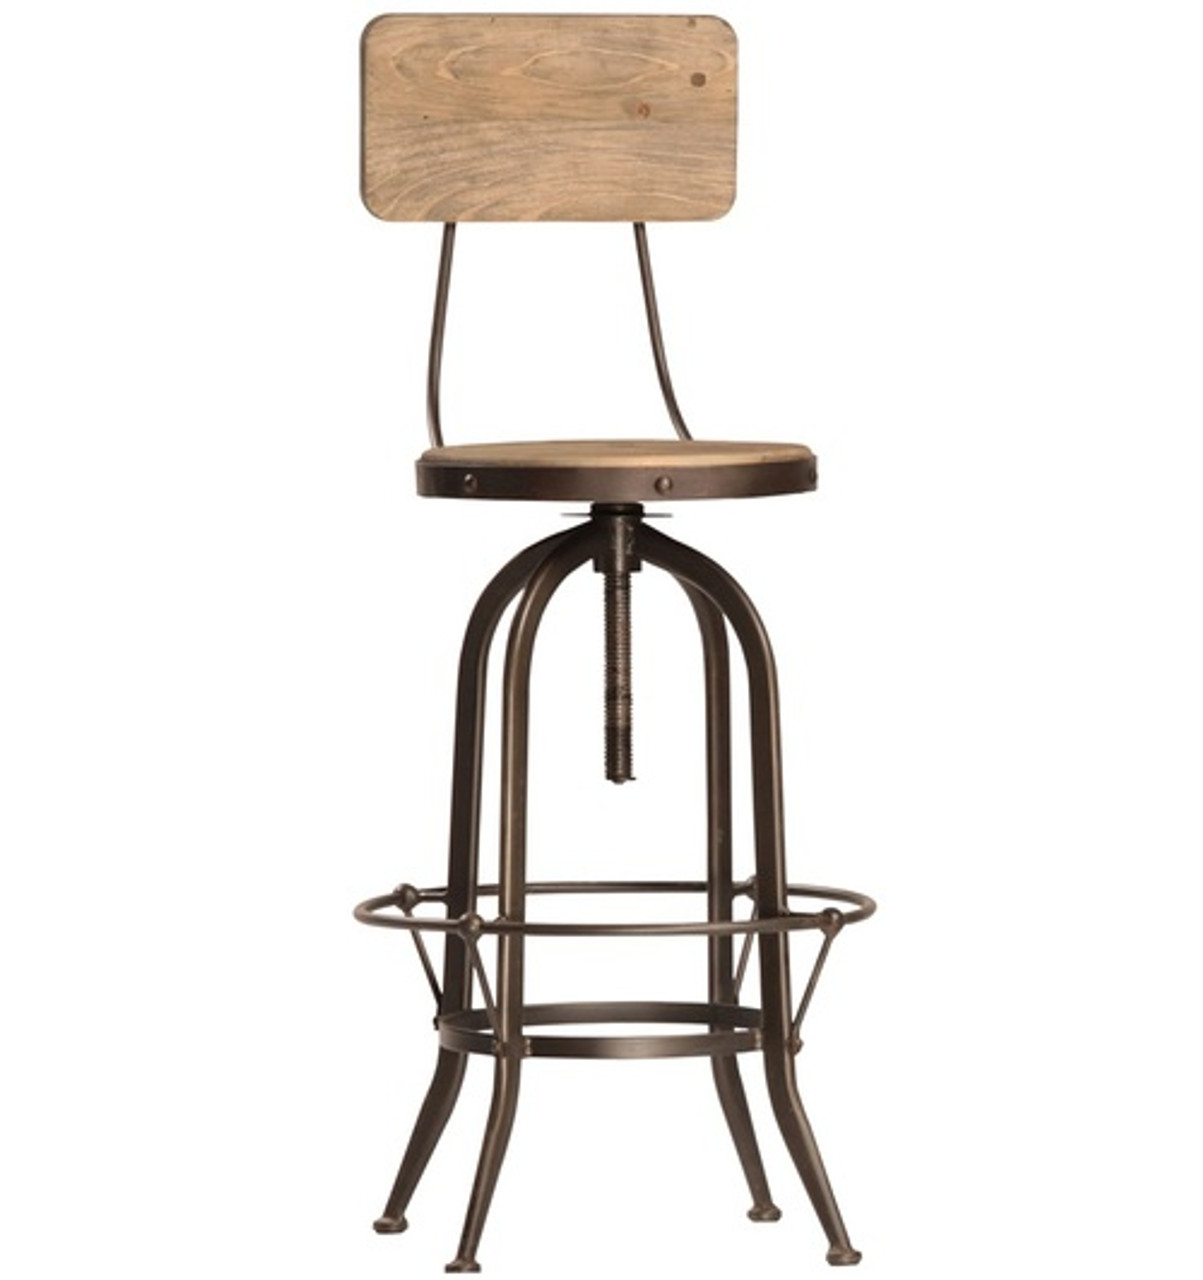 Industrial Wood Adjustable Seat Barstool High Chair: Industrial Gear Bar Stool